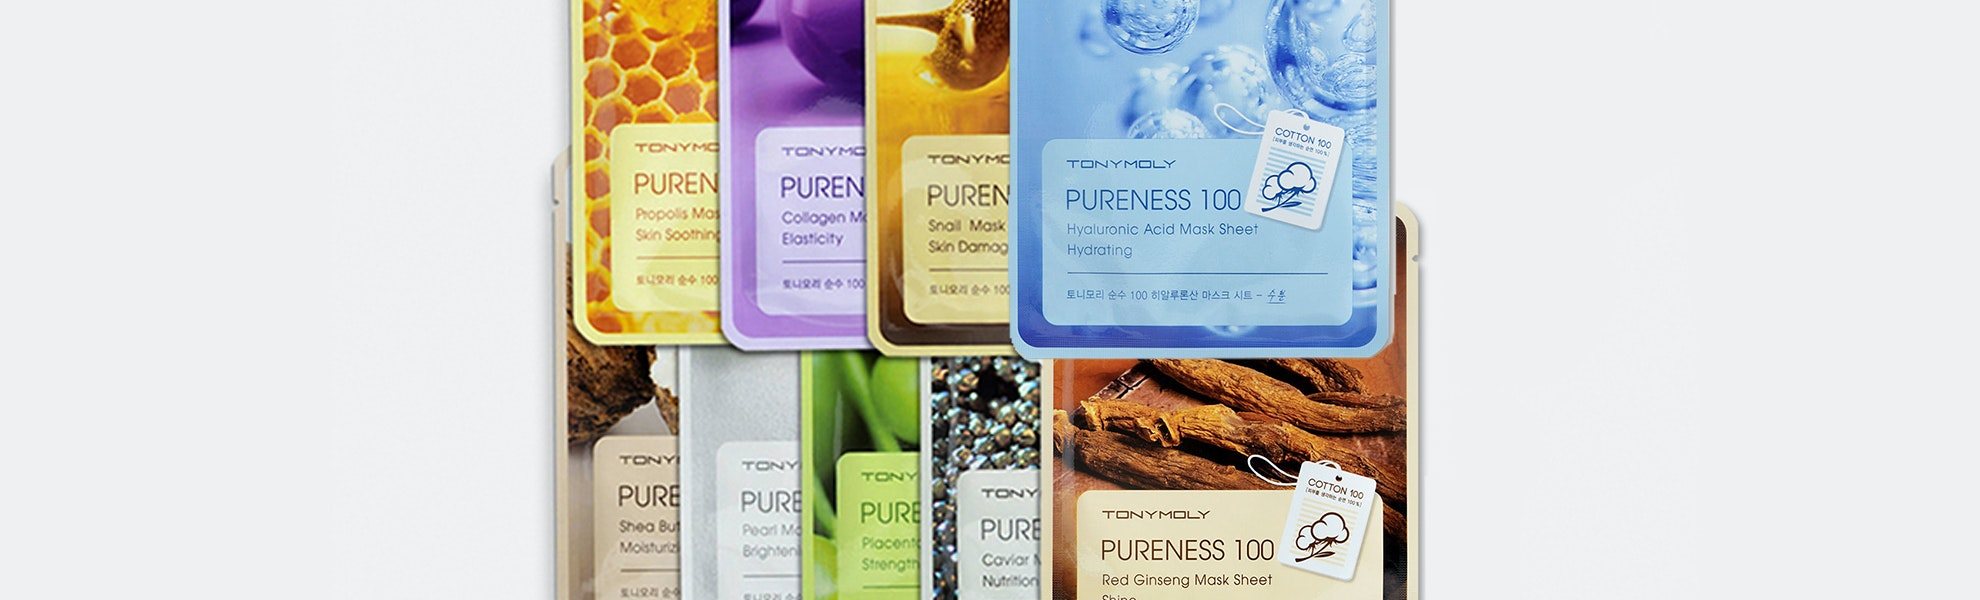 Tony Moly Pureness 100 Assorted Masks (10-Pack)